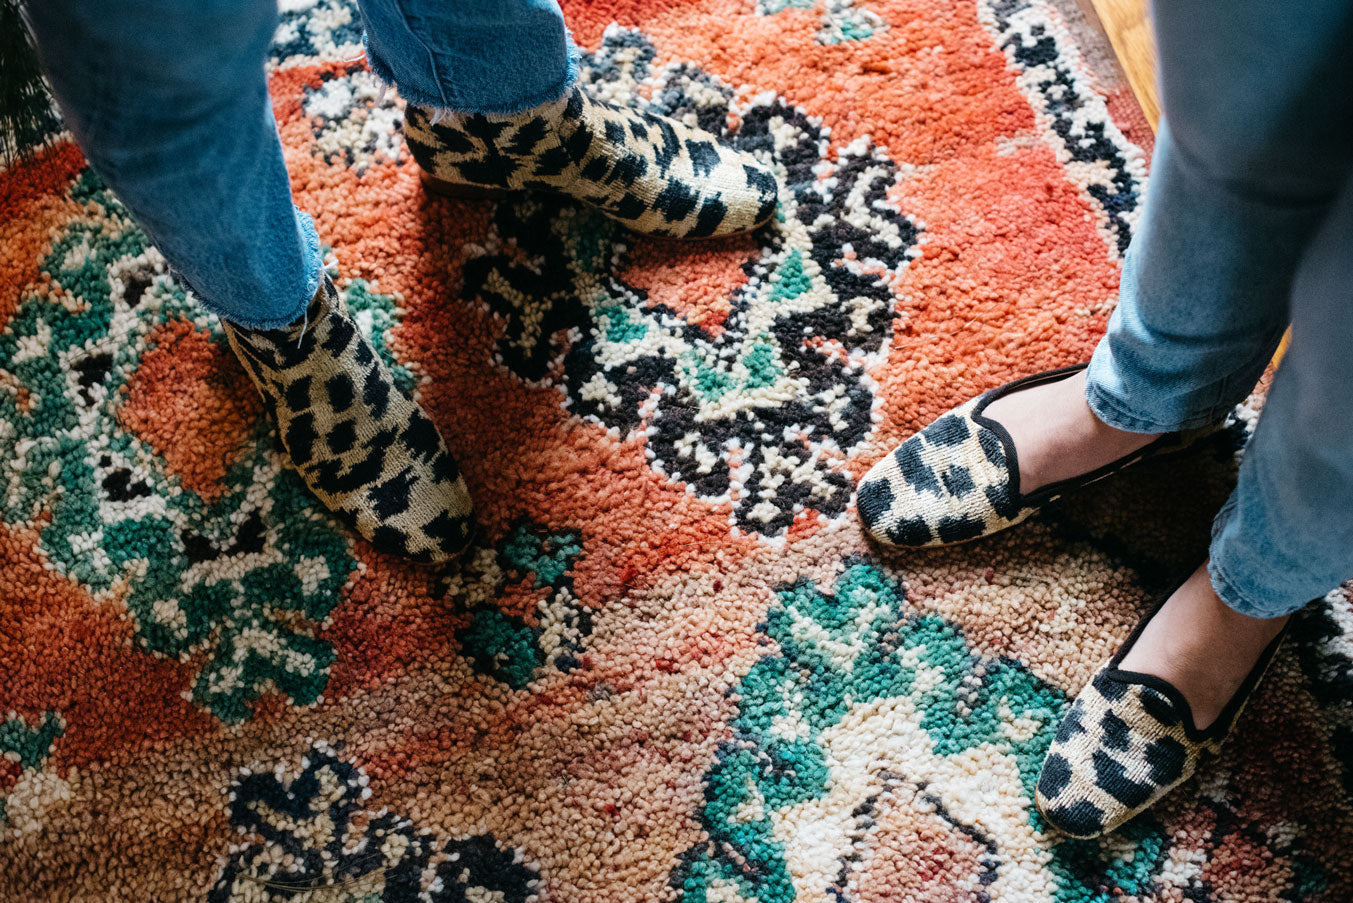 Our leopard print loafers worn on a moroccan carpet next to our matching velvet boots.